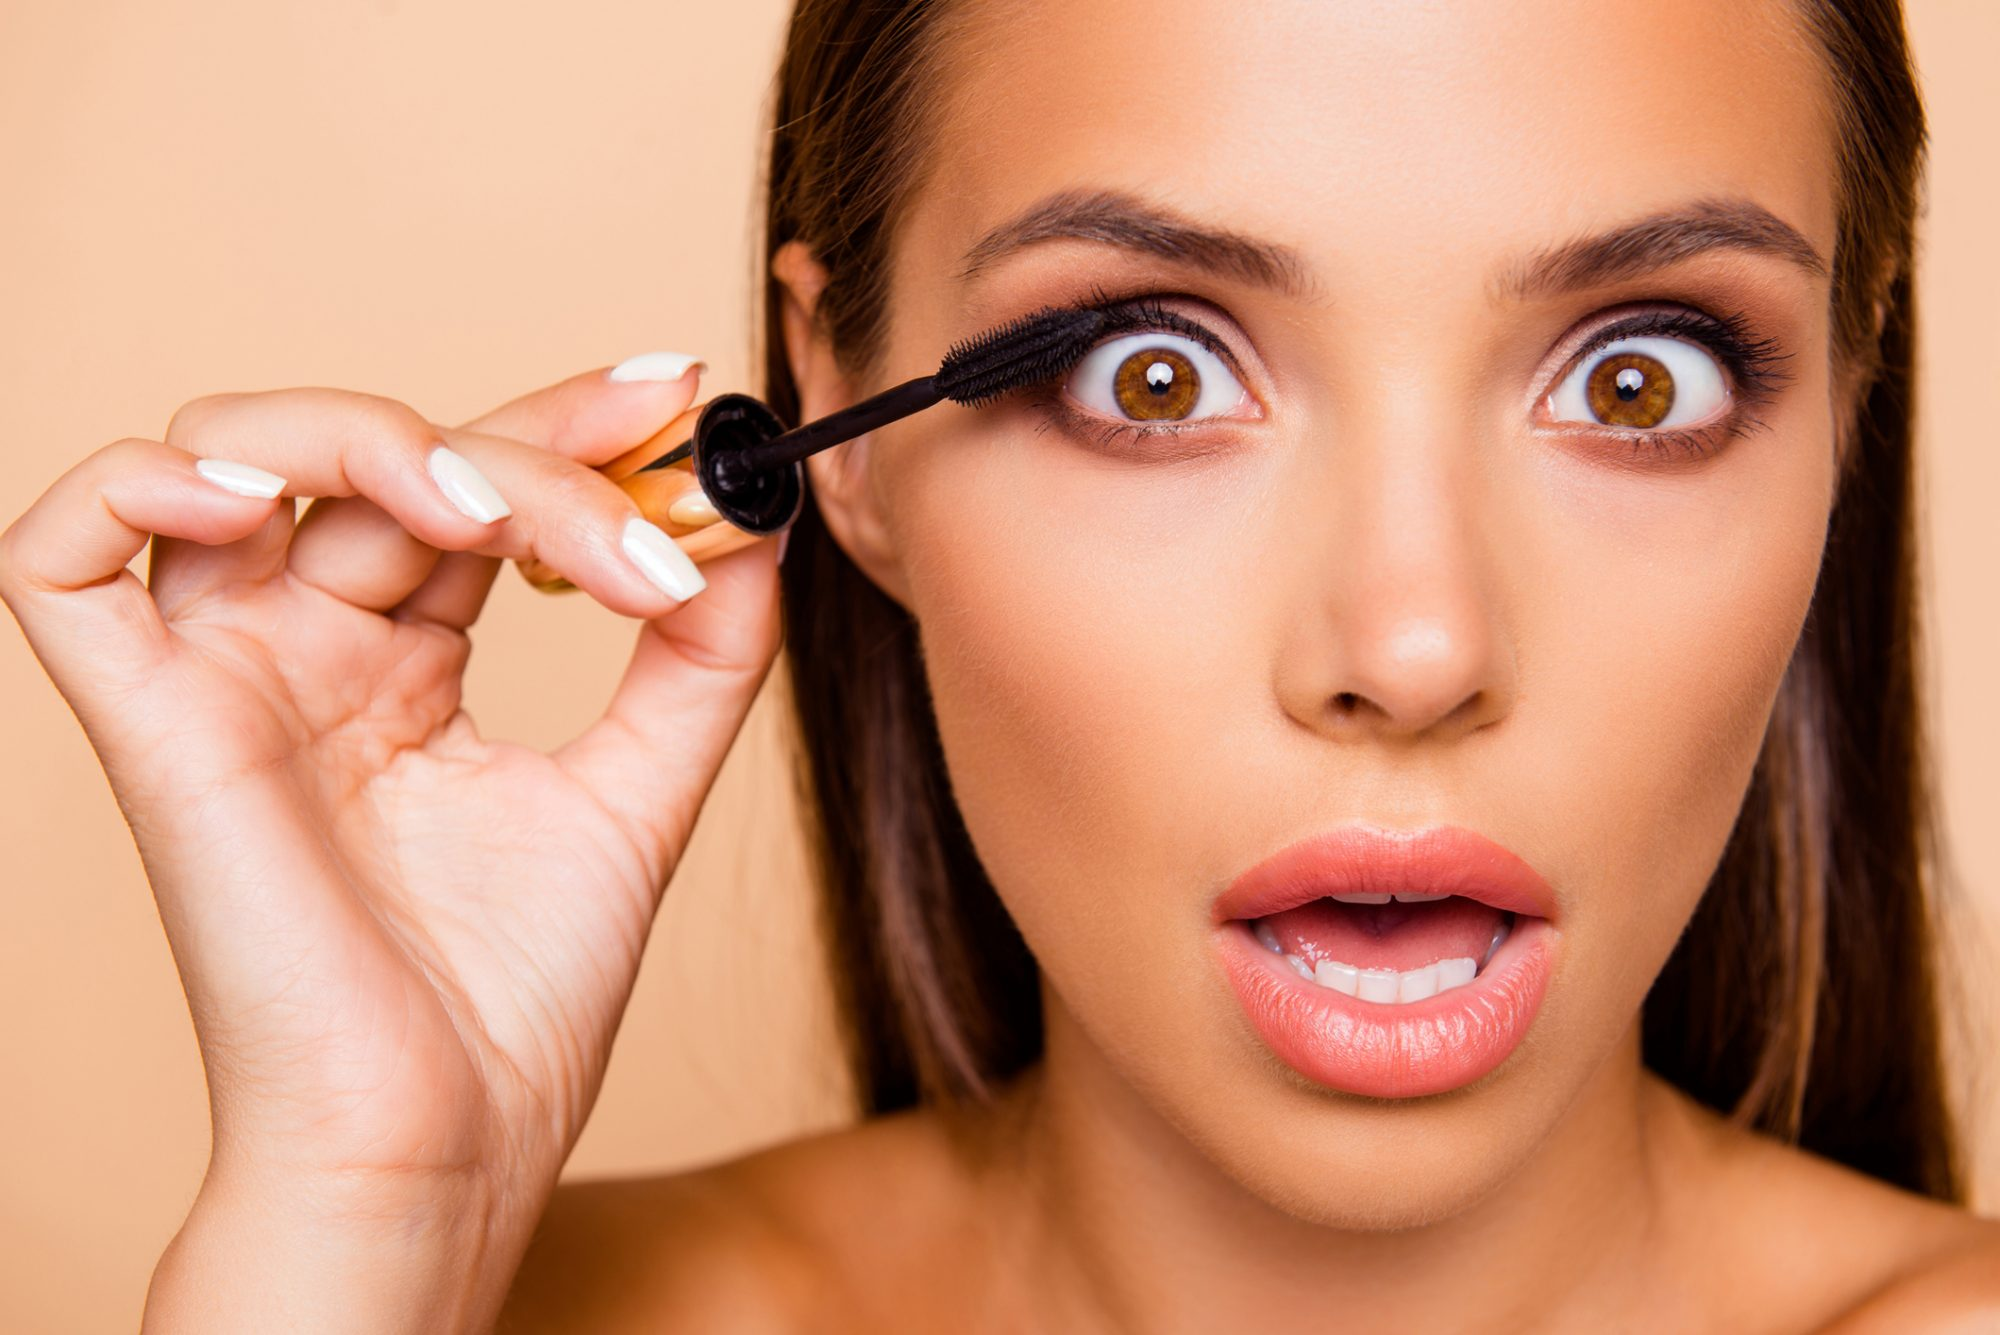 Mascara Tricks Every Southern Woman Should Know